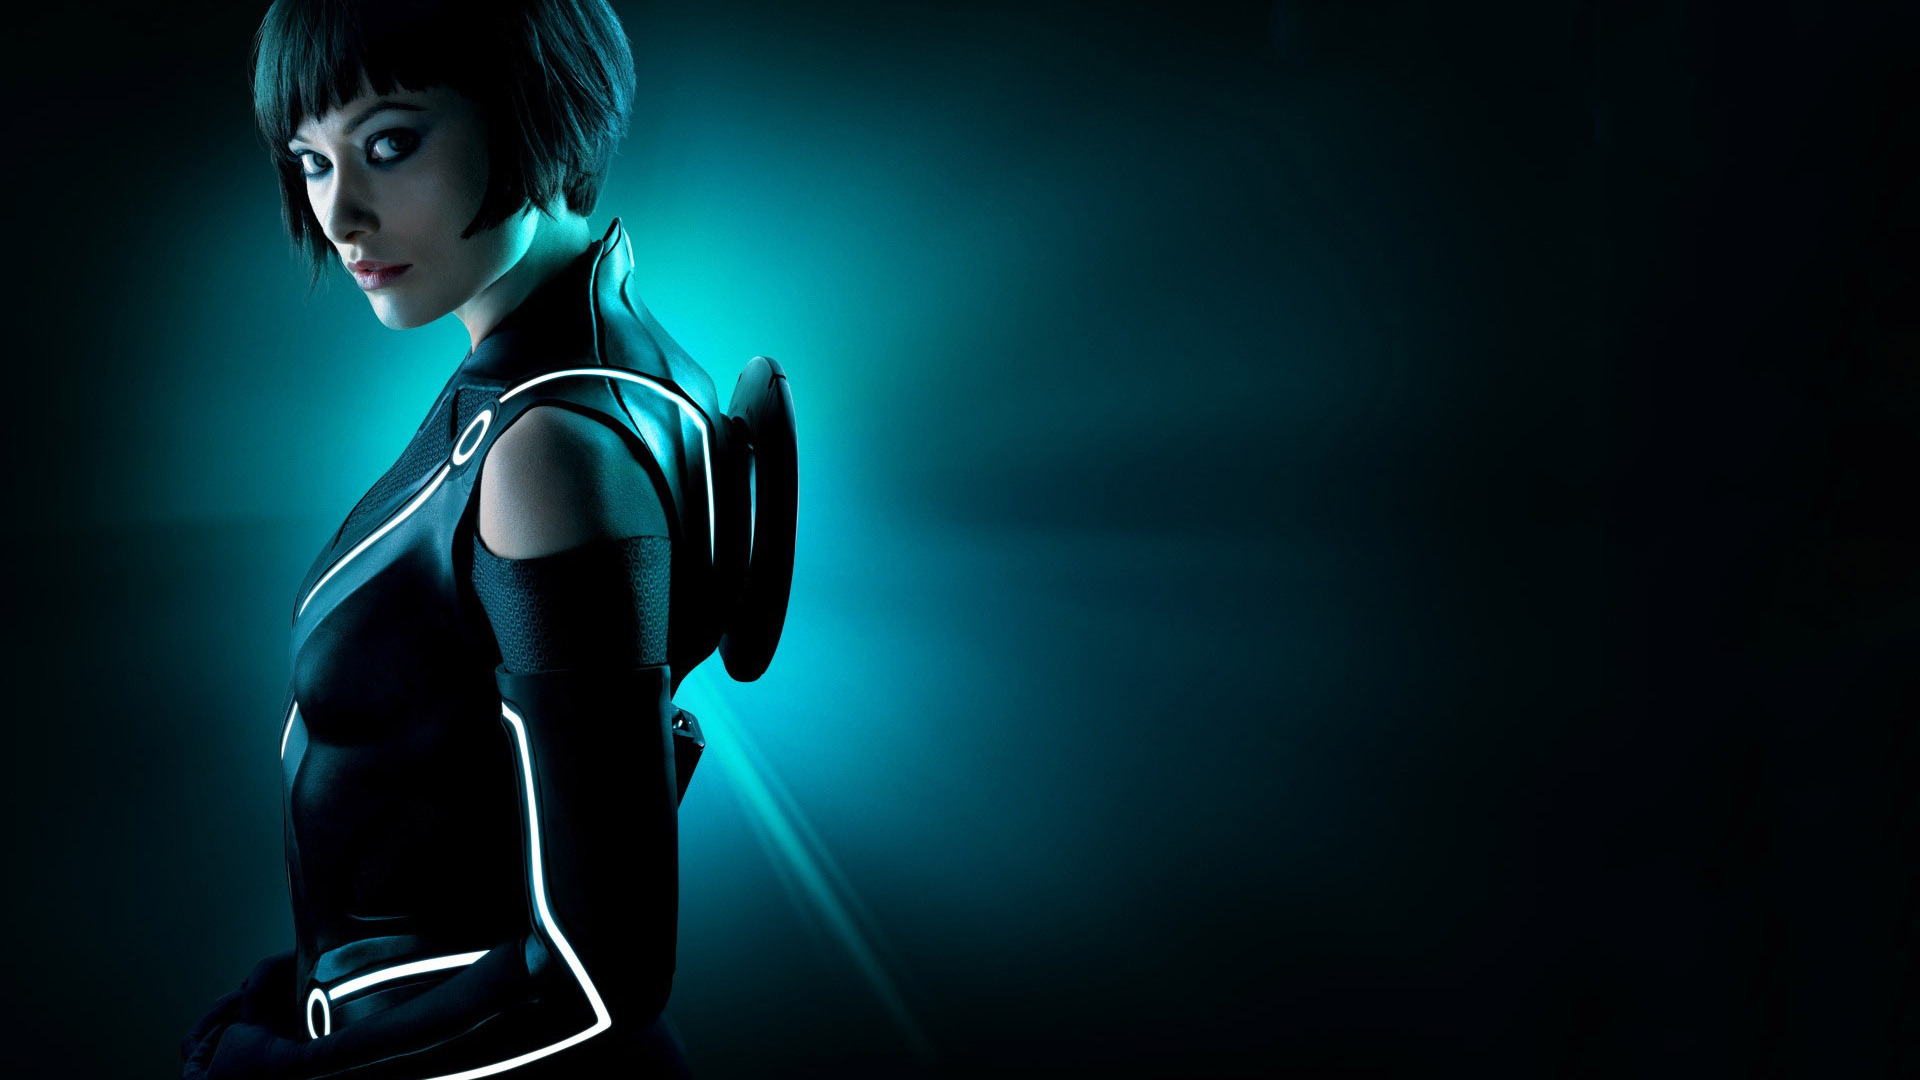 1920x1080 tron legacy movie laptop full hd 1080p hd 4k wallpapers